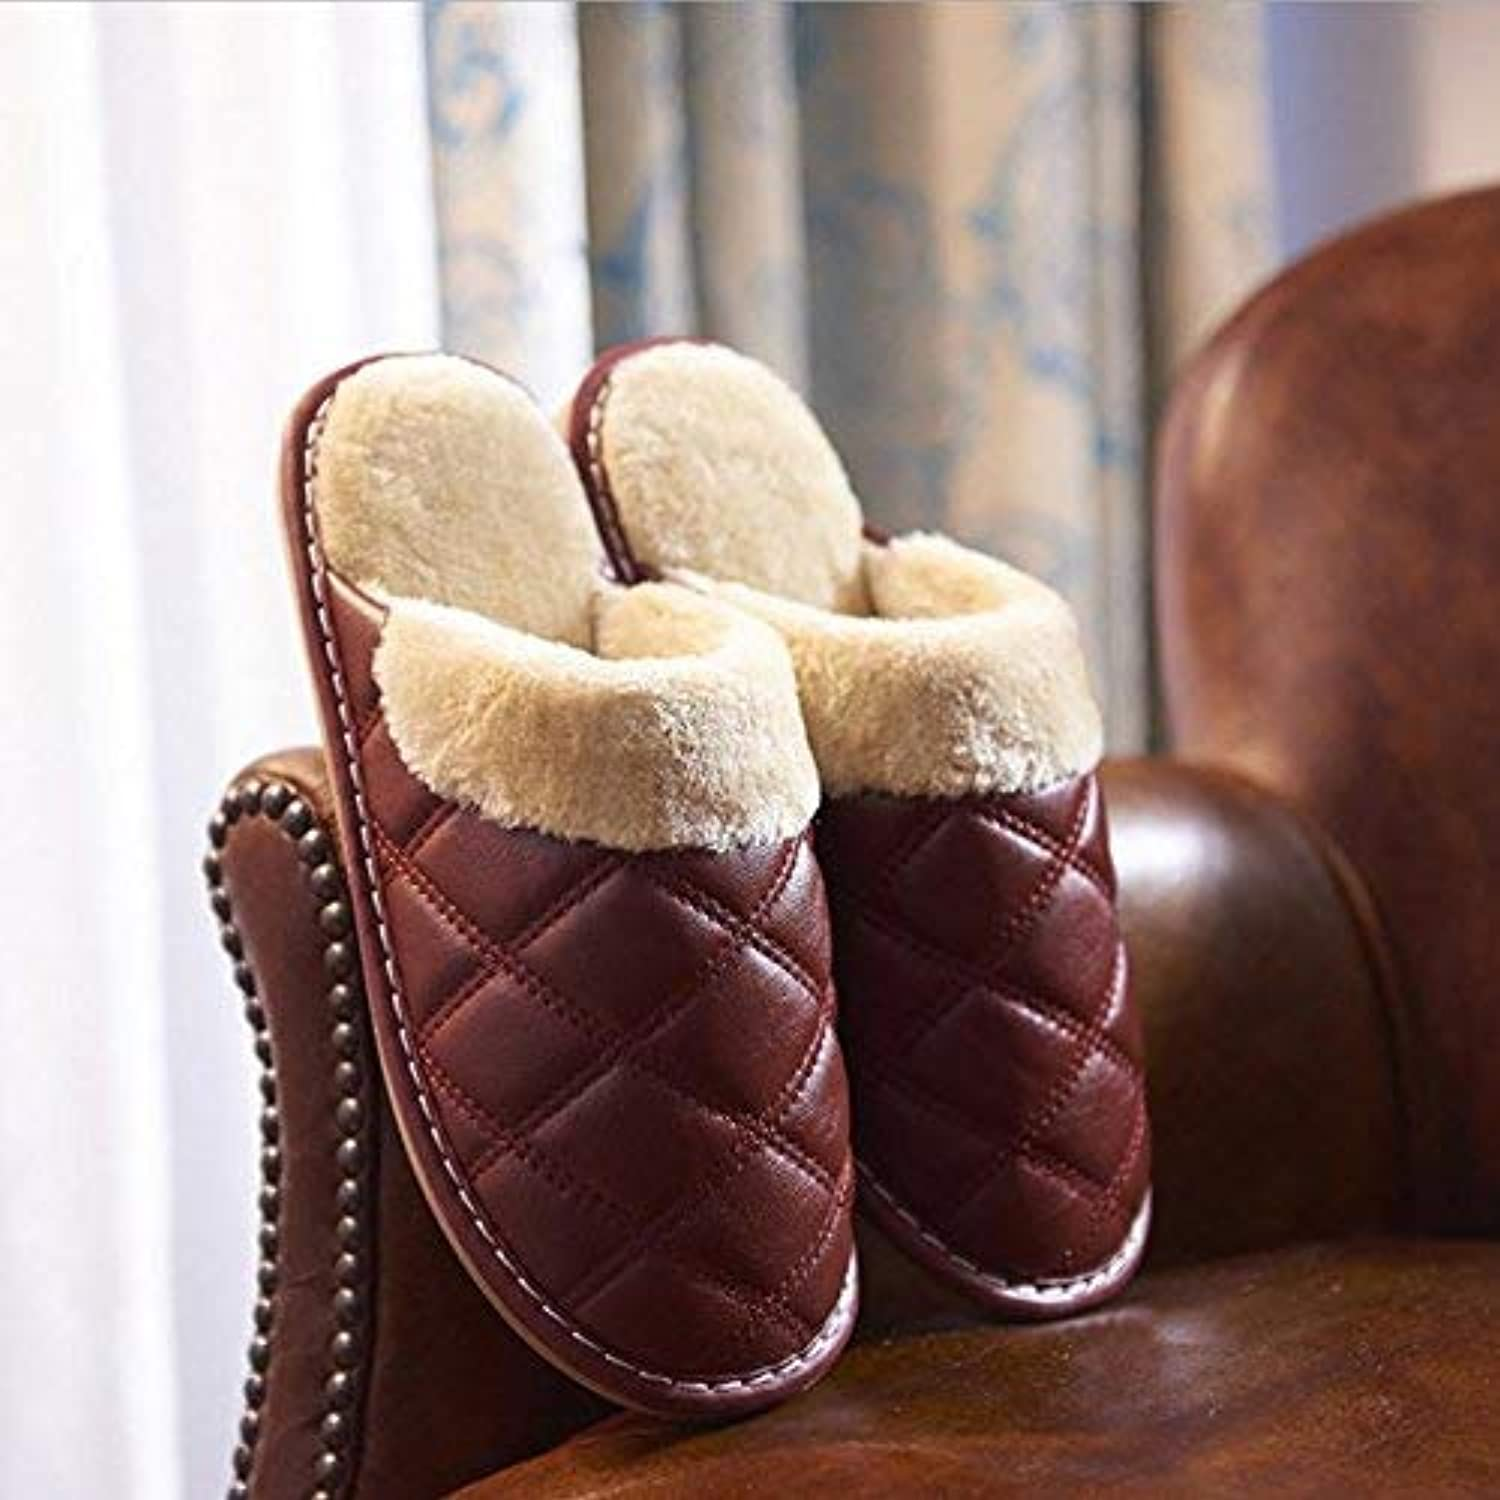 JaHGDU Men Home Cotton Slippers Indoor Keep Warm Casual Slippers Brown Soild color Personality Quality for Men